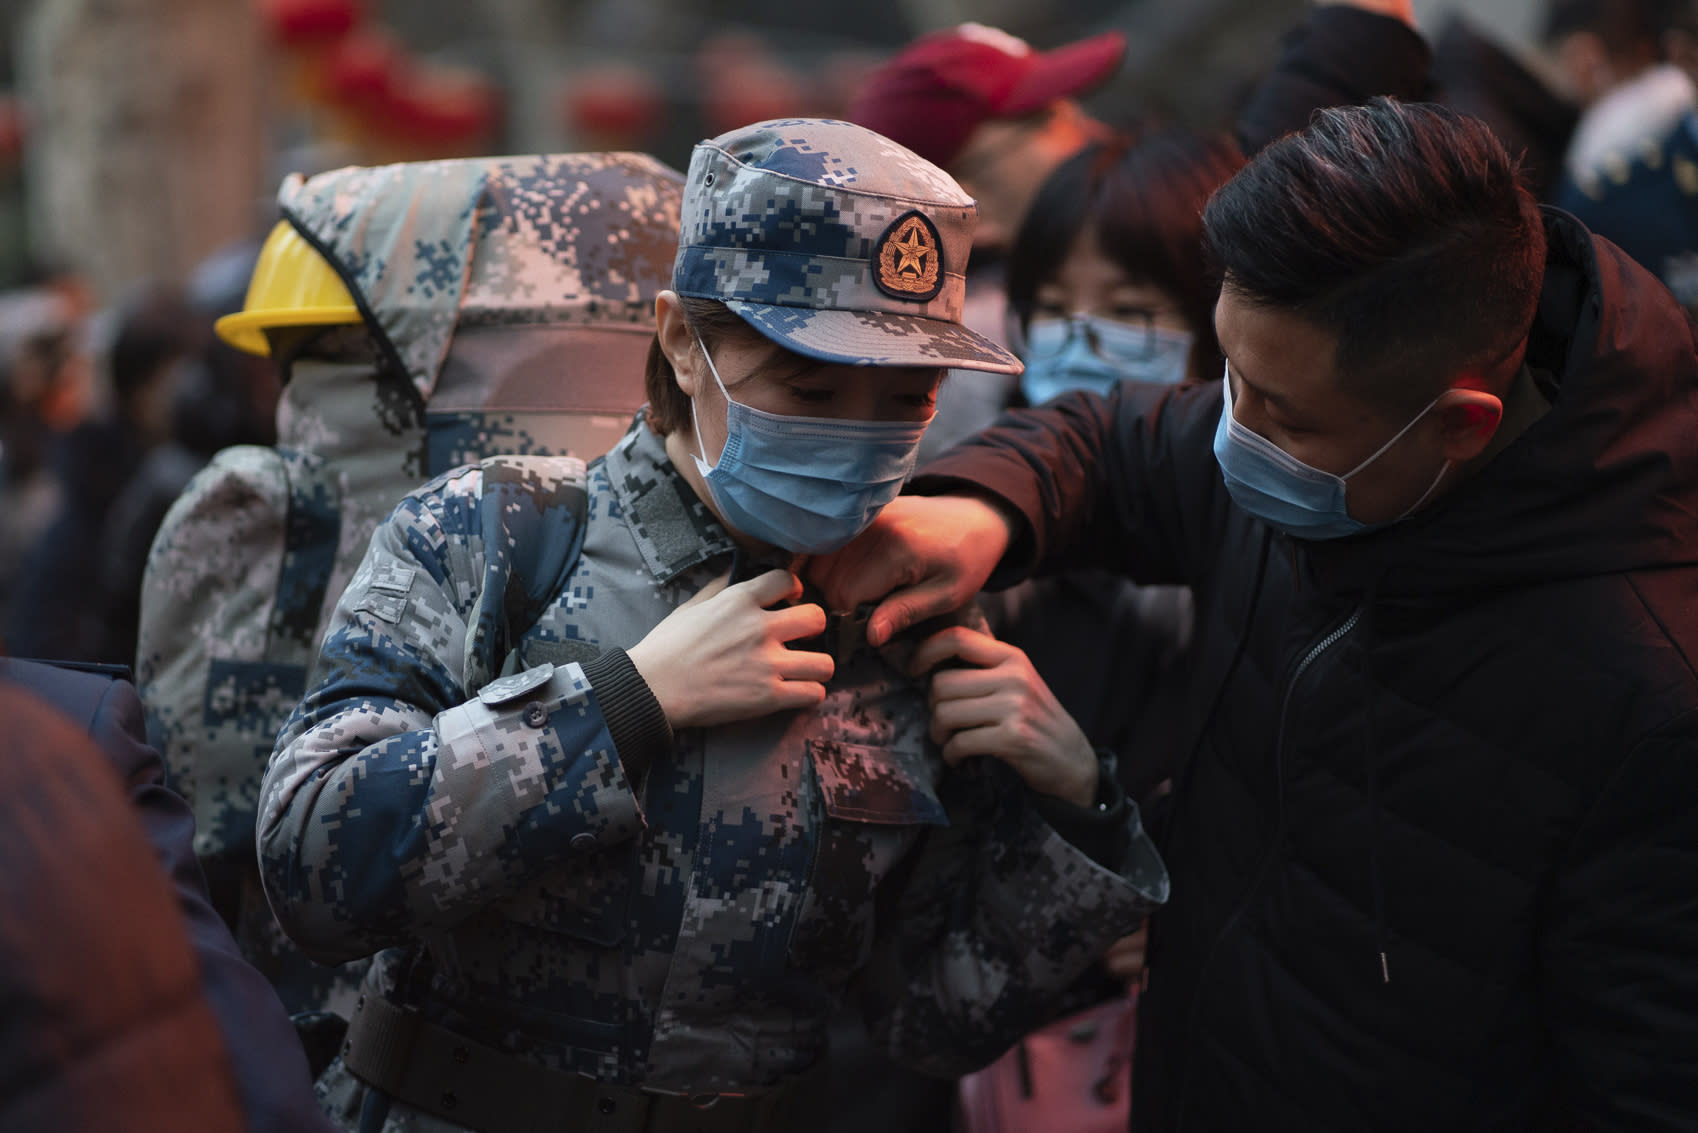 Deadly coronavirus outbreak 'getting stronger', Chinese health minister admits